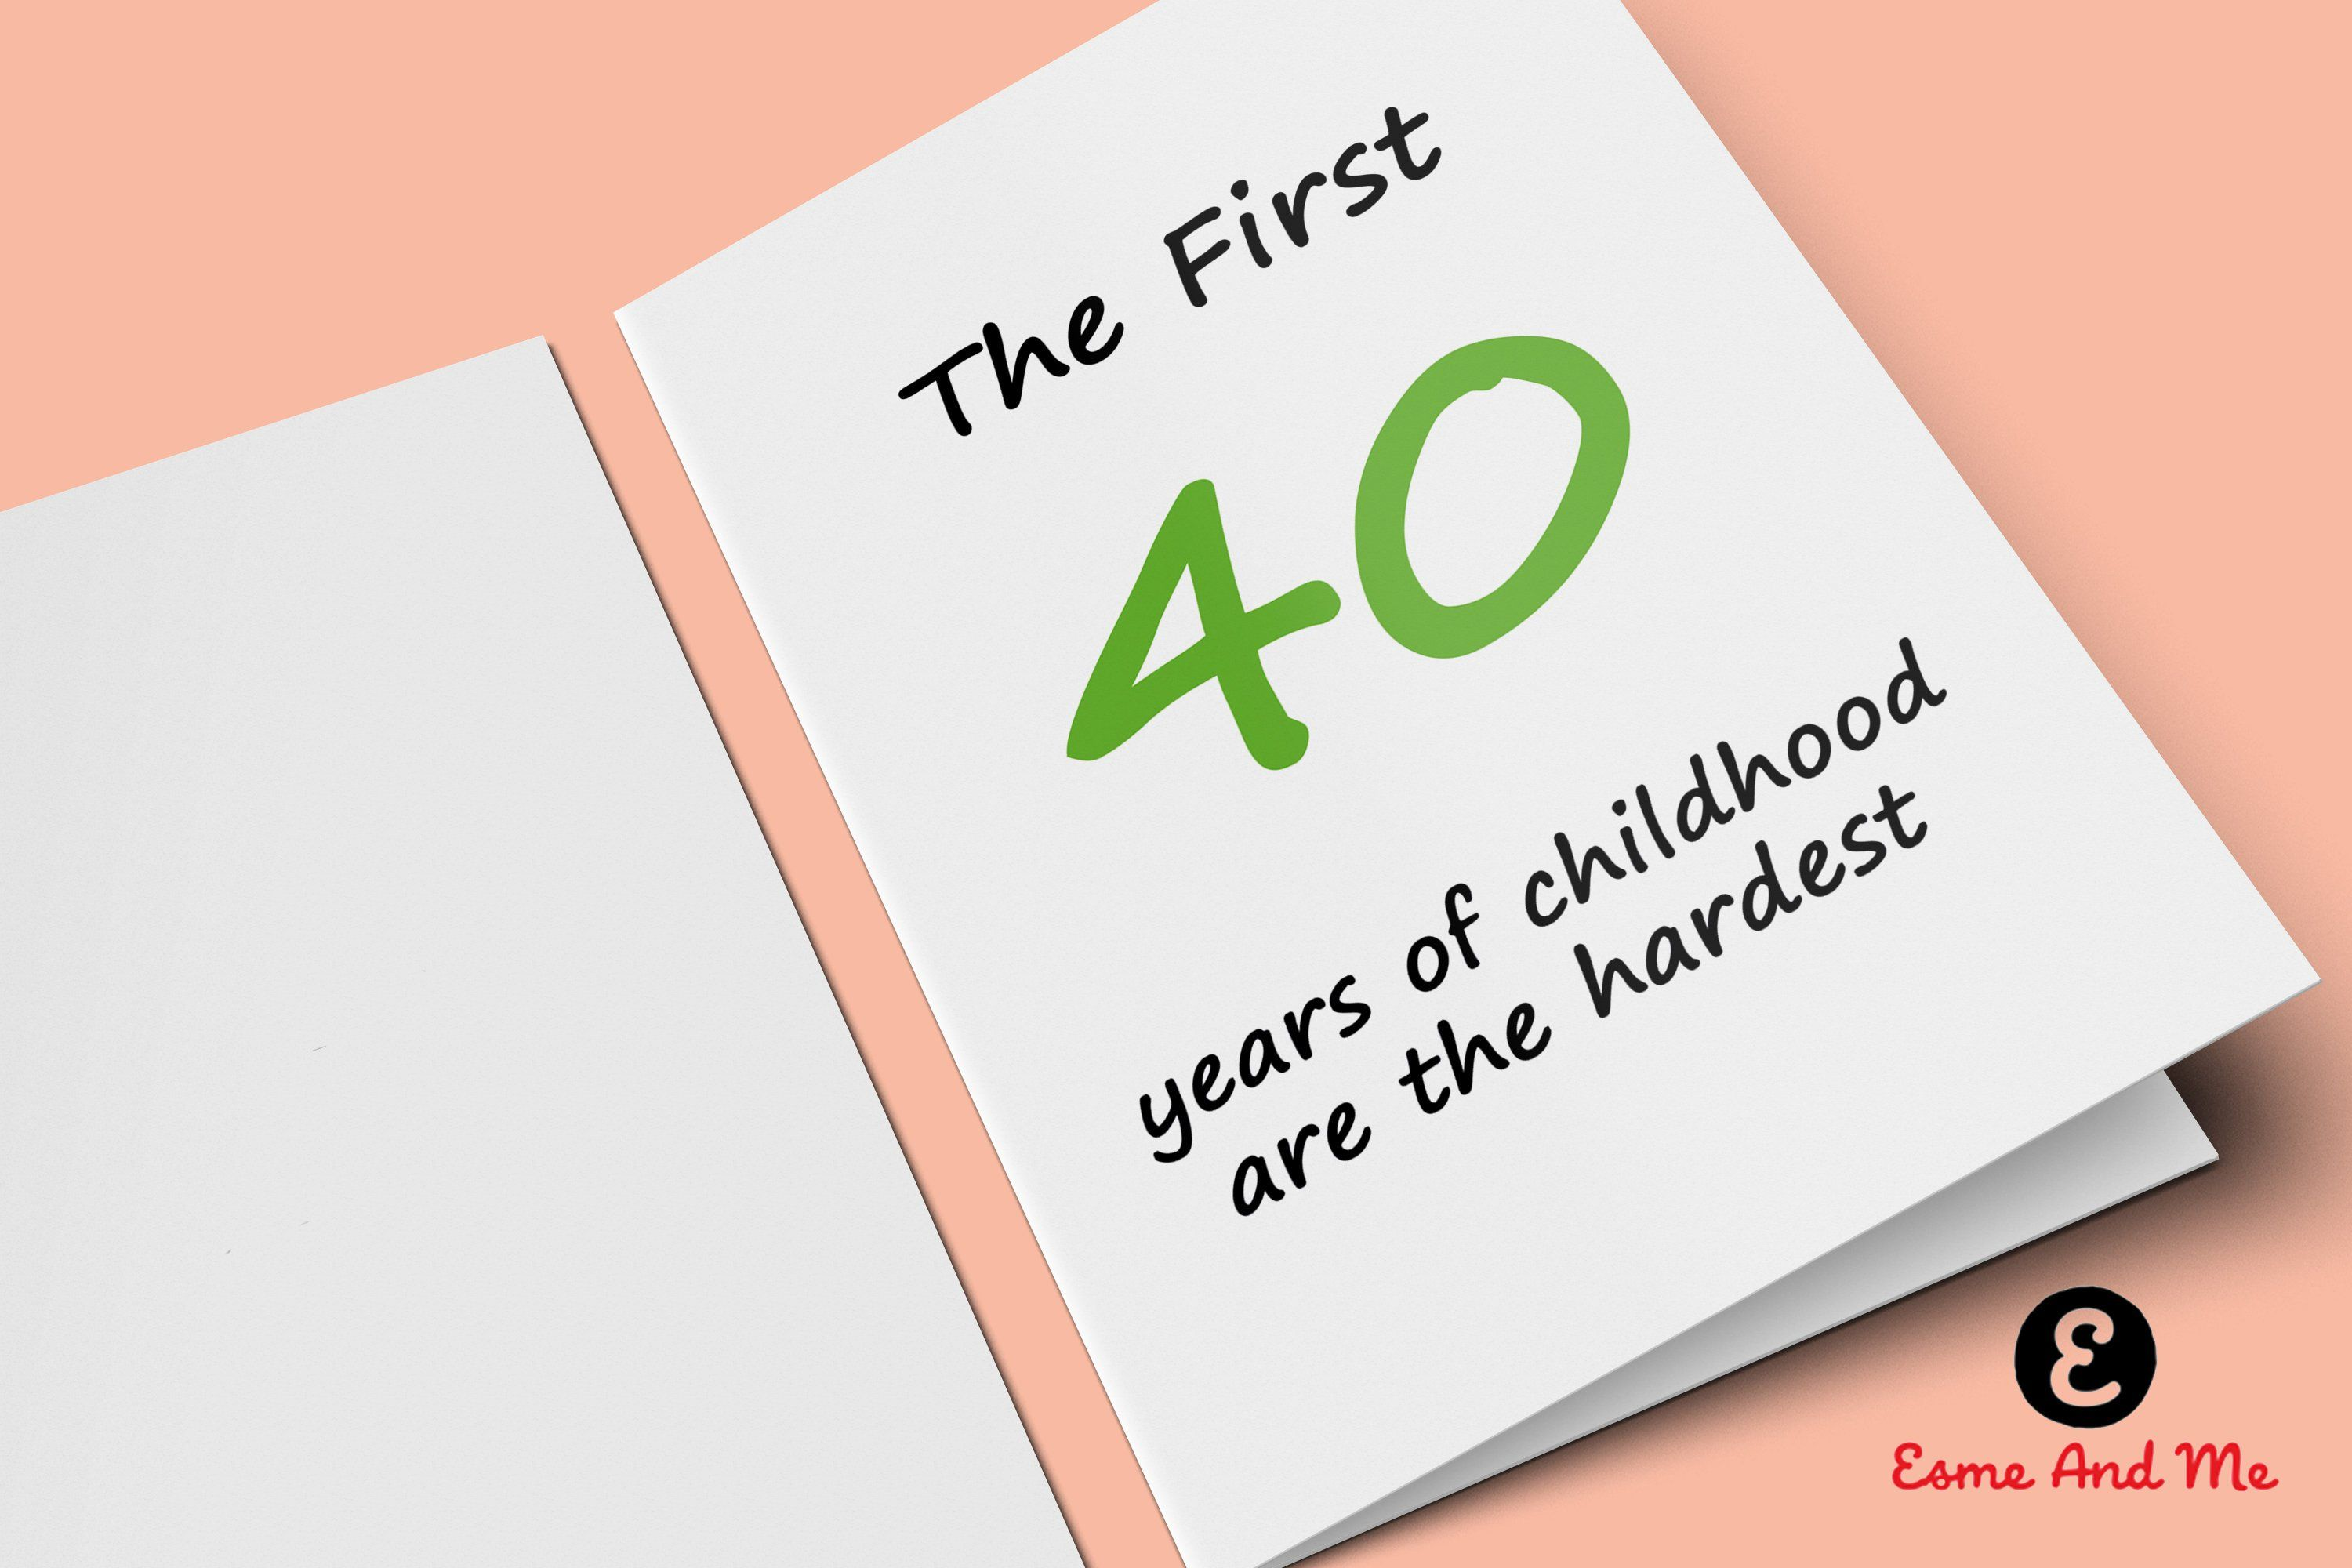 The First 40 Years Of Childhood Are Hardest Funny Birthday Card Rude Cheeky Greetings By EsmeandMeUK On Etsy